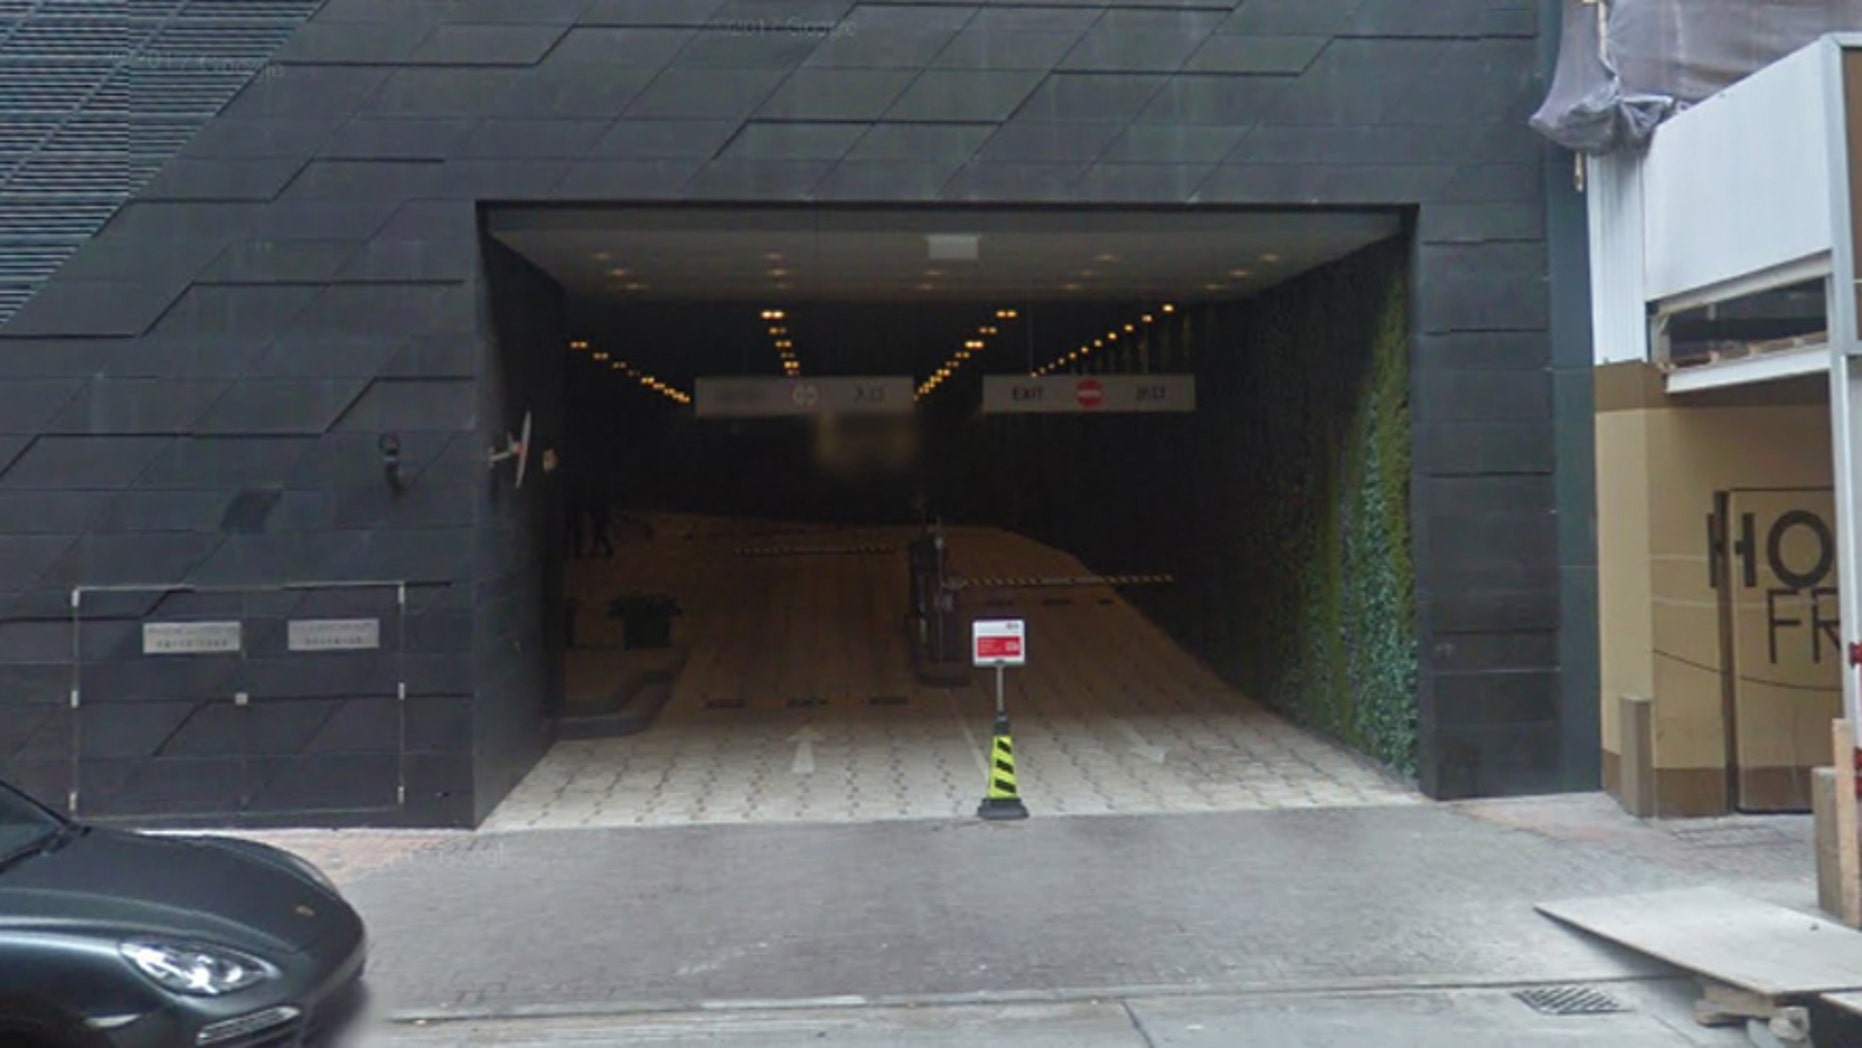 Entrance to The Upton garage